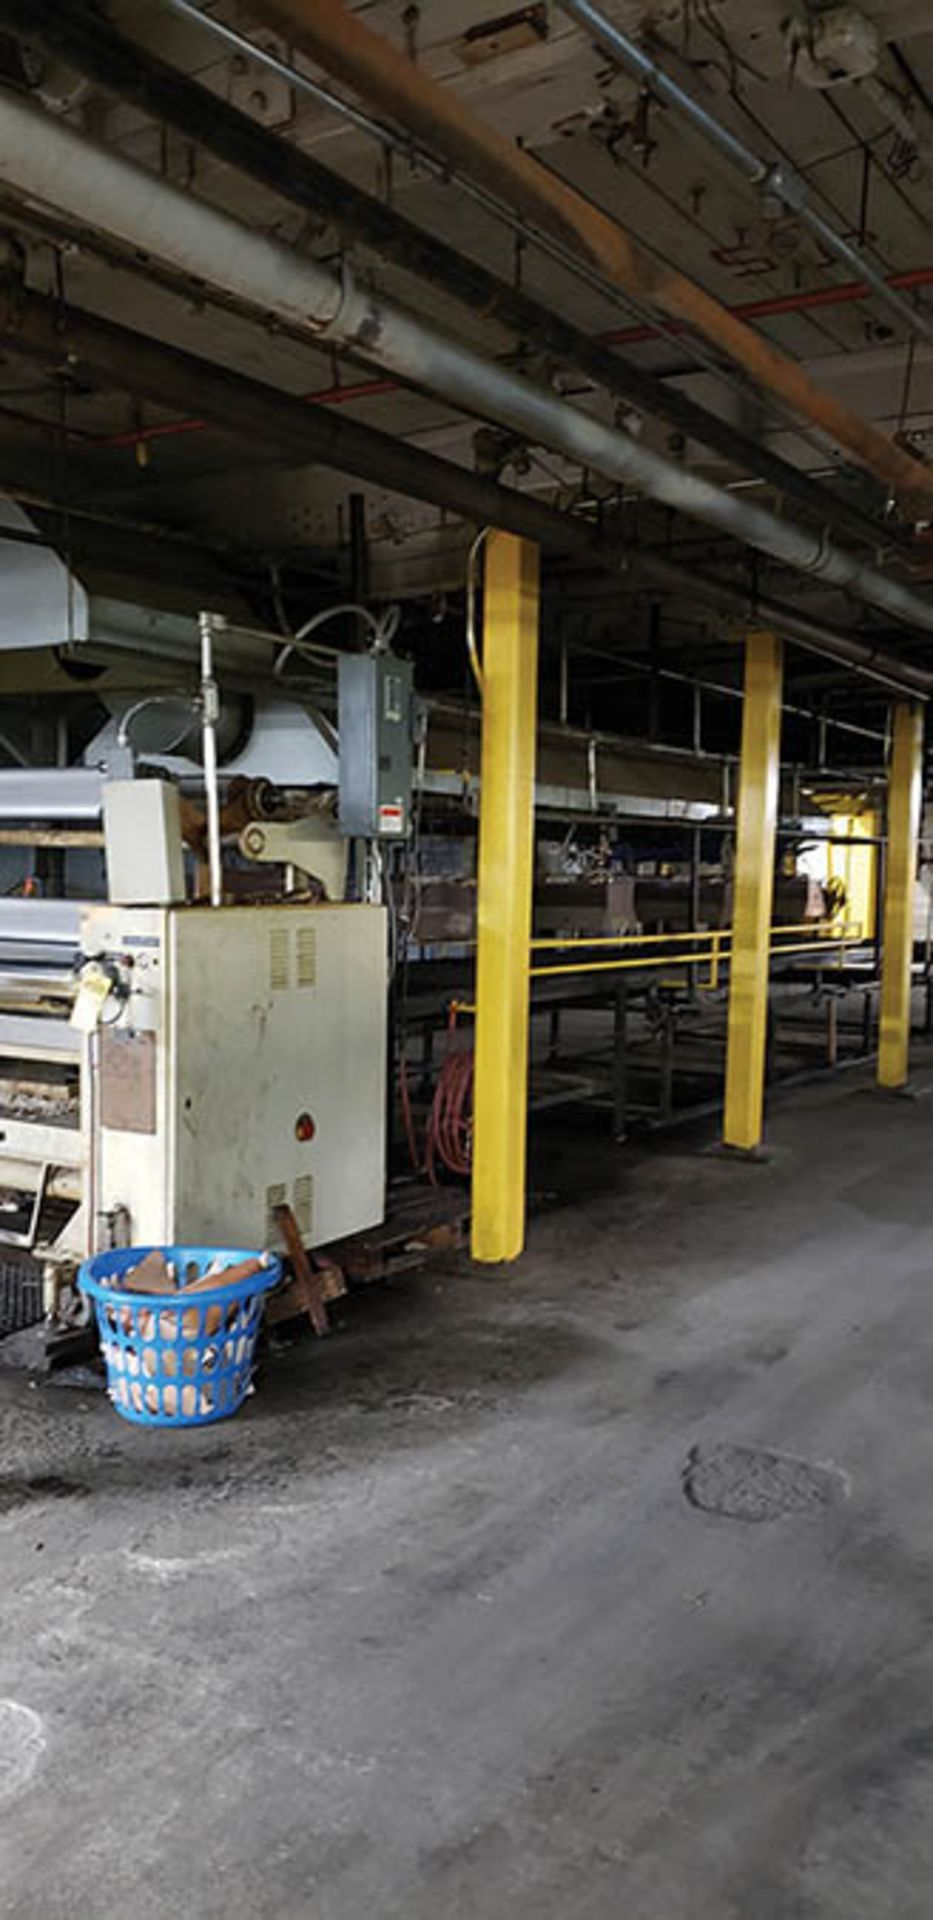 1996 GEMATA ROTOCOAT REVERSE 3-ROLL OIL/WAX COATER LINE (8) HEATERS, BELT CONVEYOR5' X 30', 75 1/4'' - Image 2 of 7